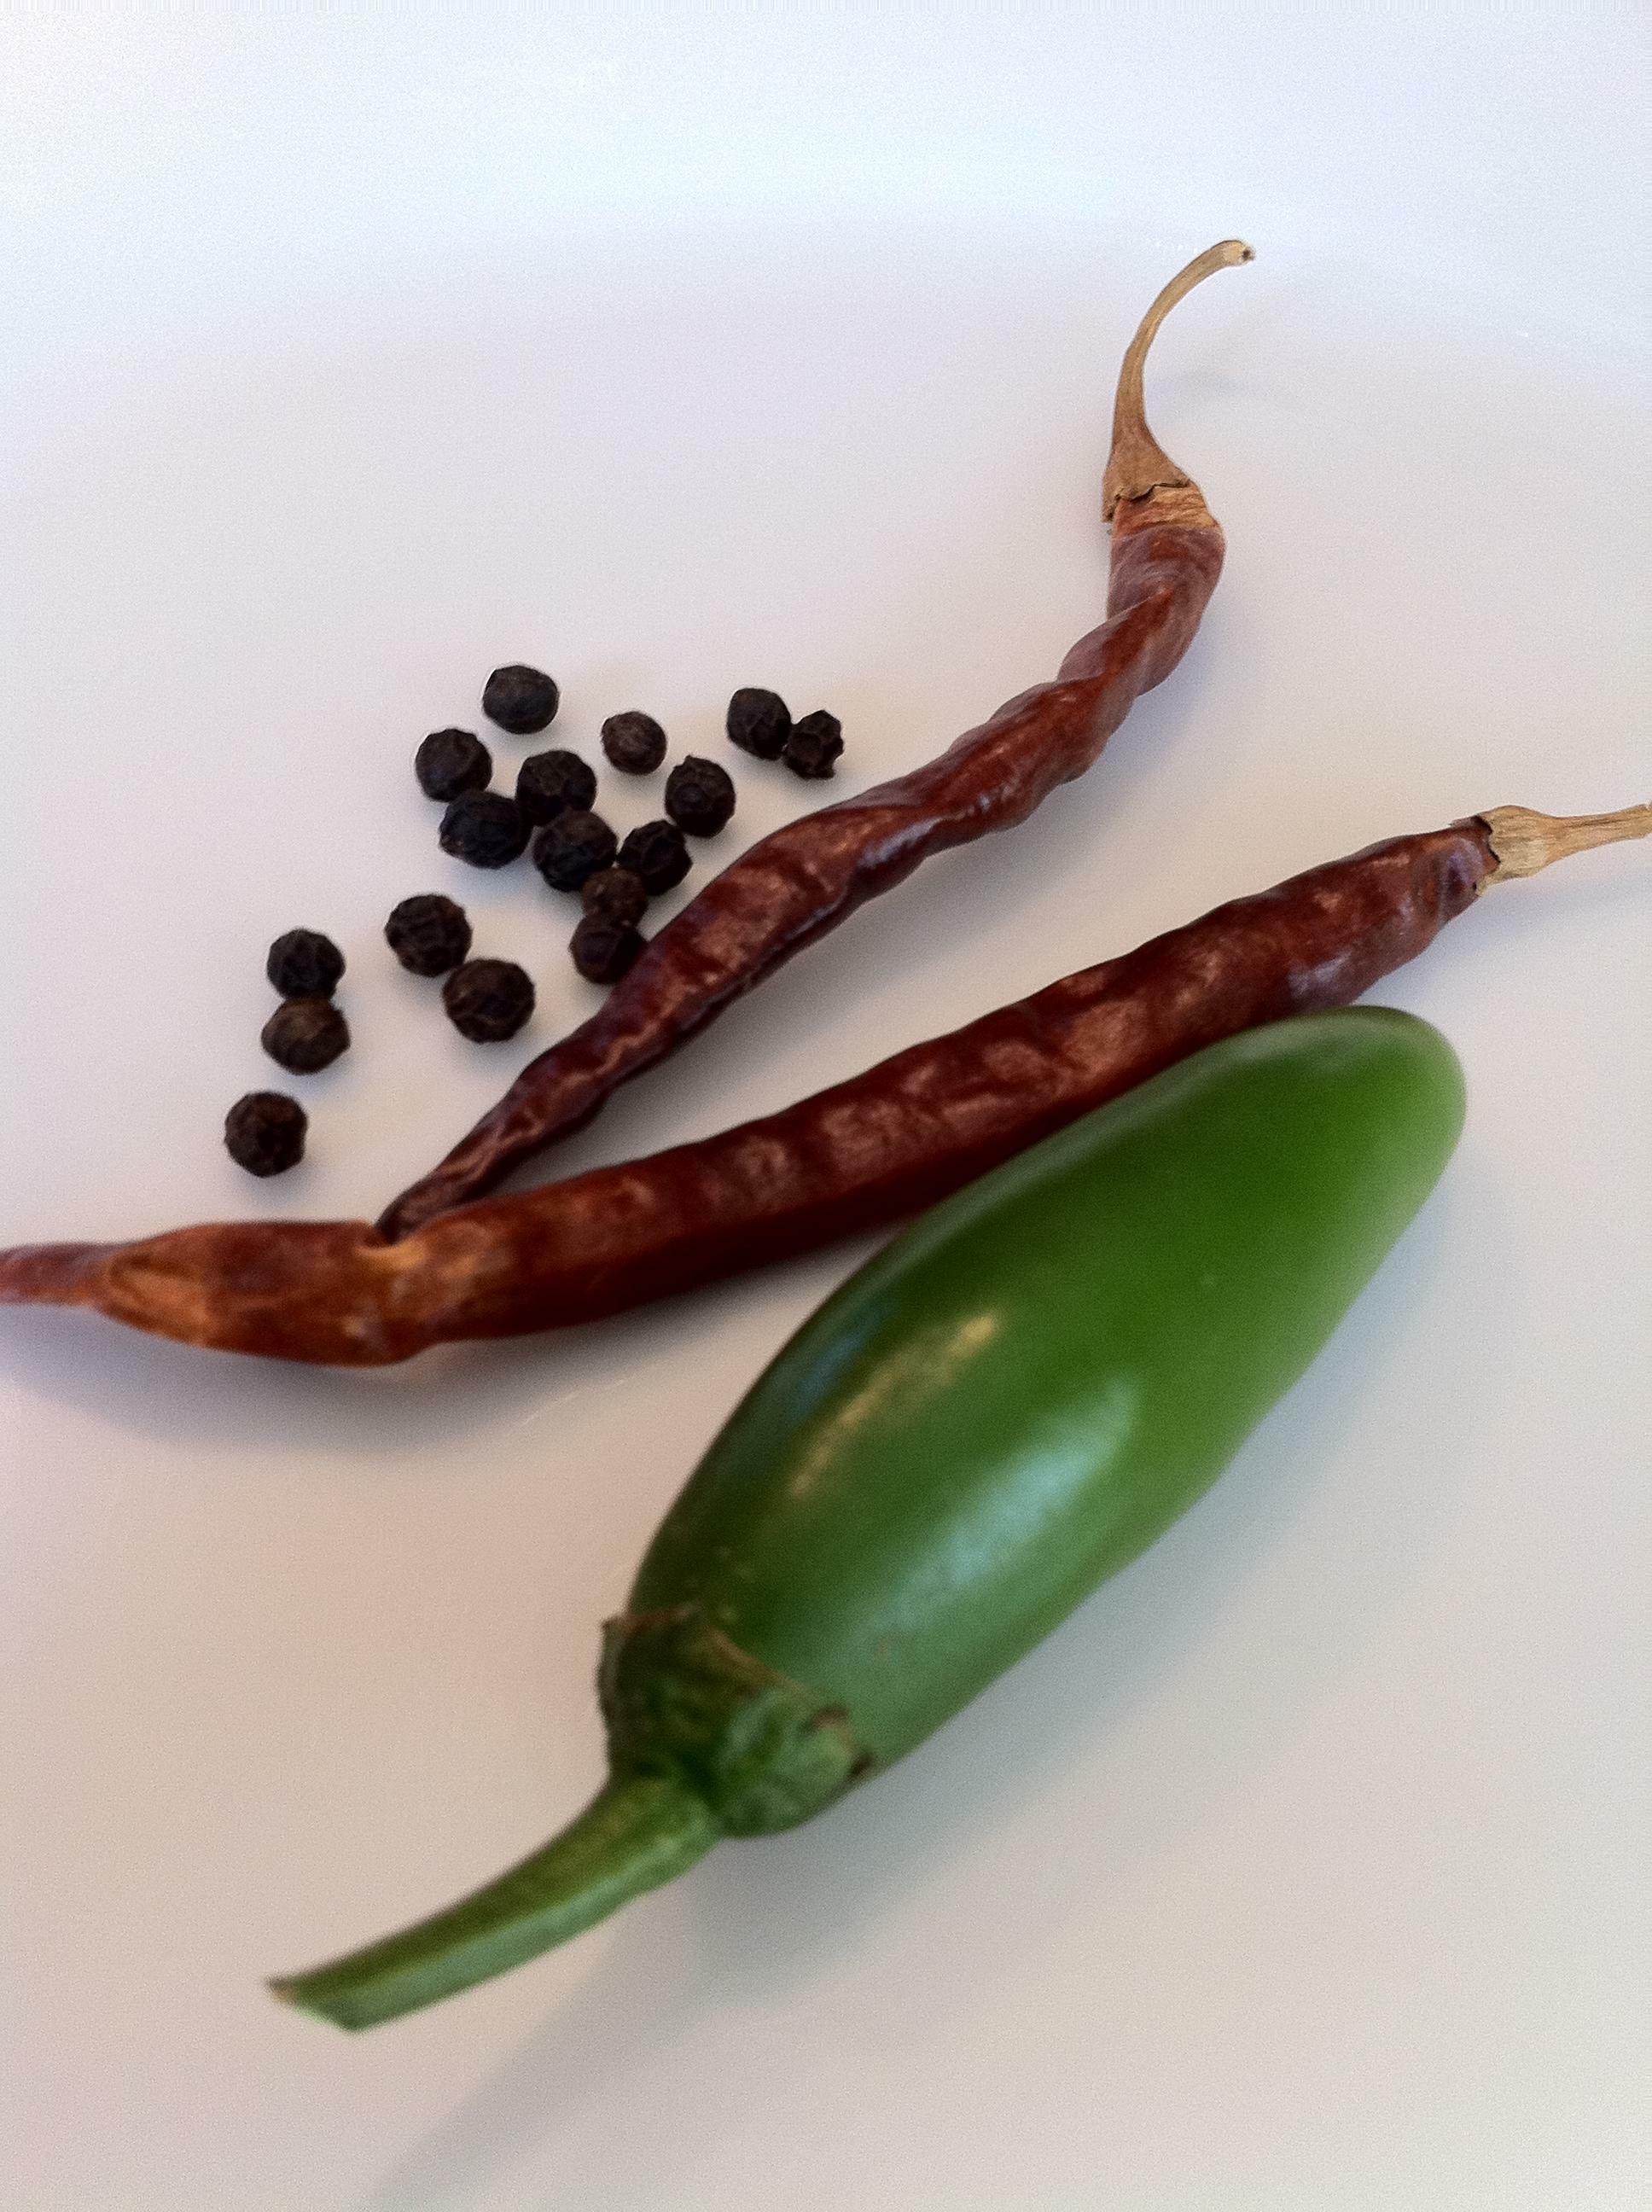 Black Pepper, Chile De Arbol, Chile Serrano